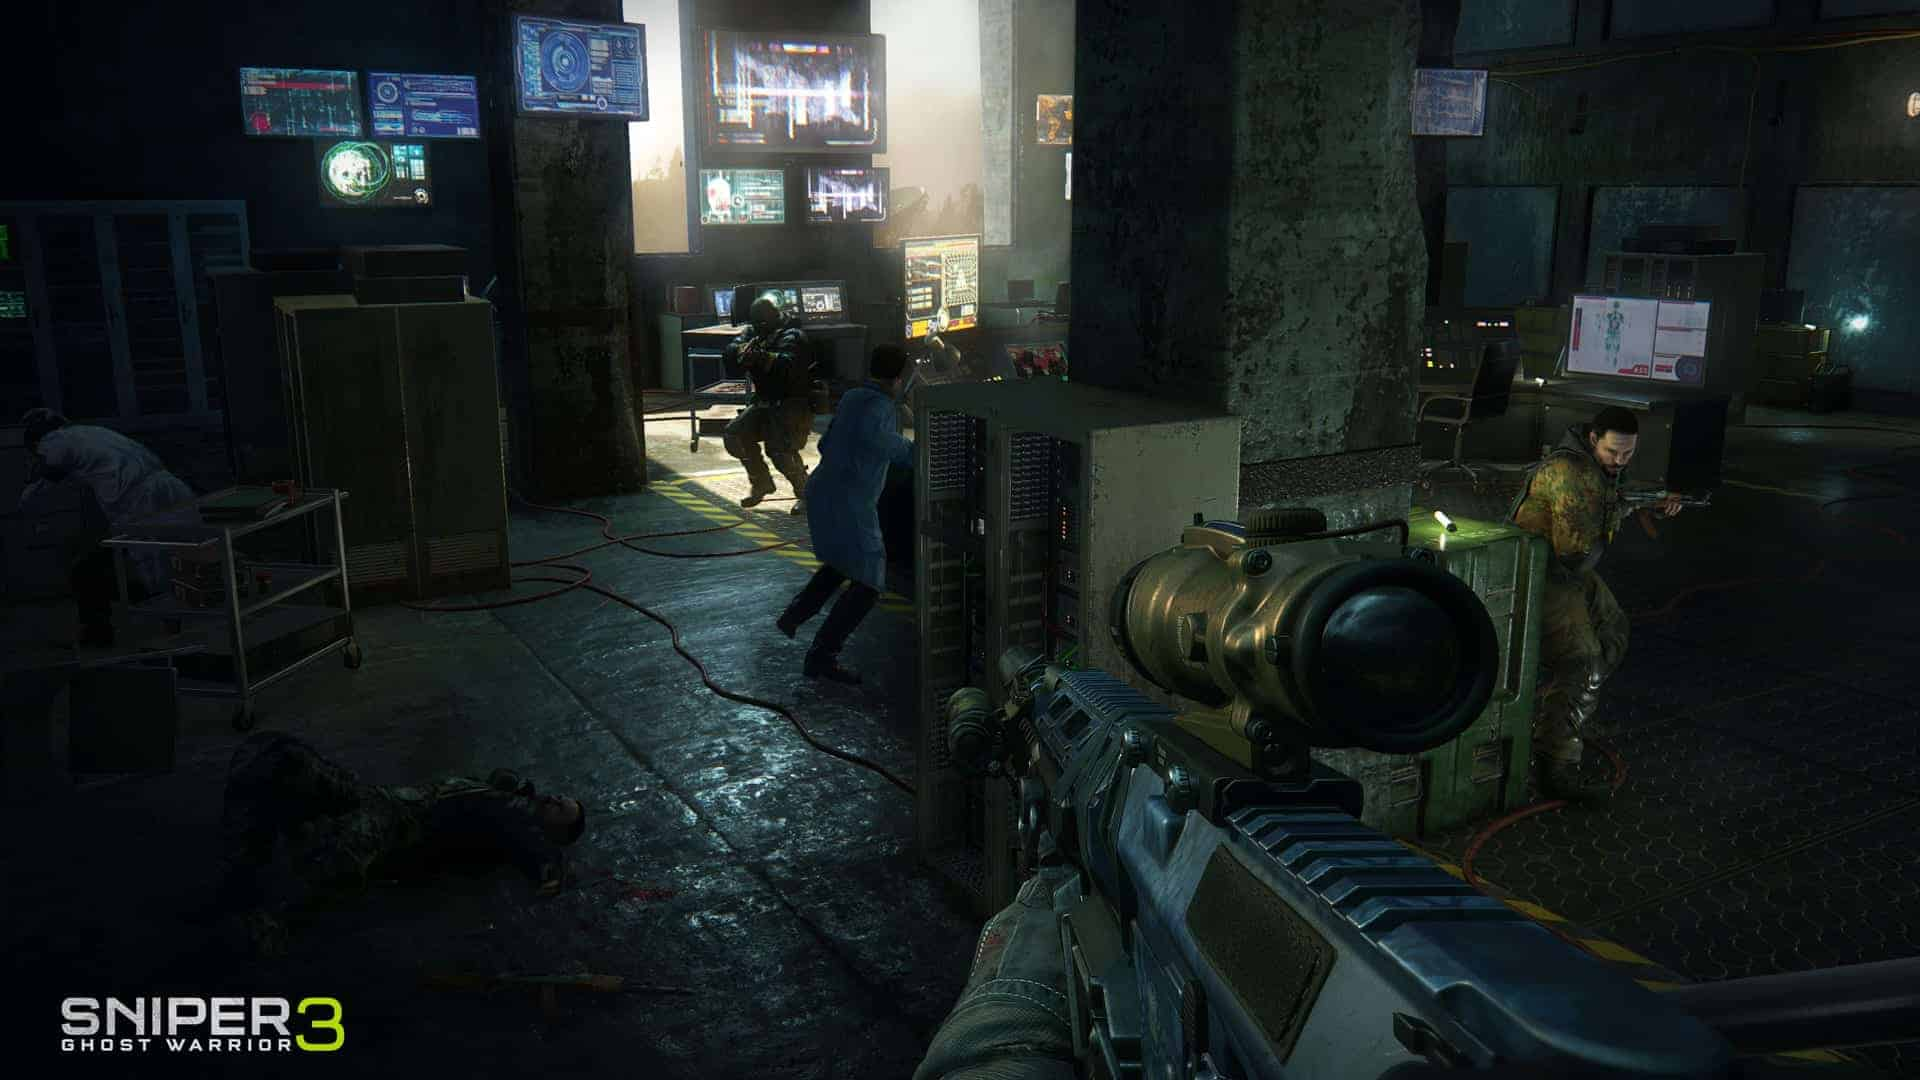 sniper ghost warrior 3 version complete pc game download